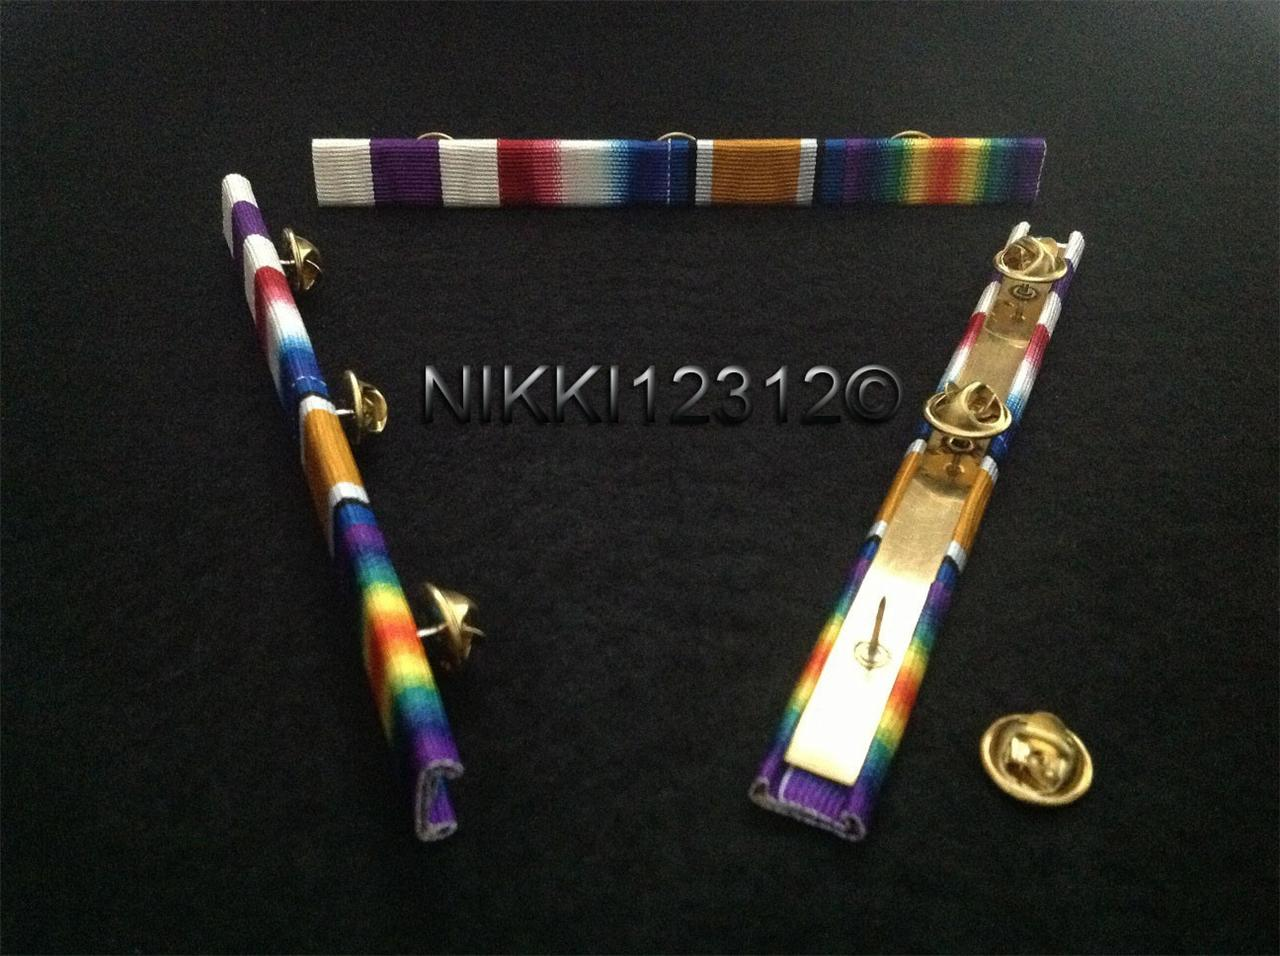 WW1-MILITARY-CROSS-STAR-BWM-VICTORY-MEDAL-RIBBON-BAR-TRIO-OAK-LEAF-OPTION